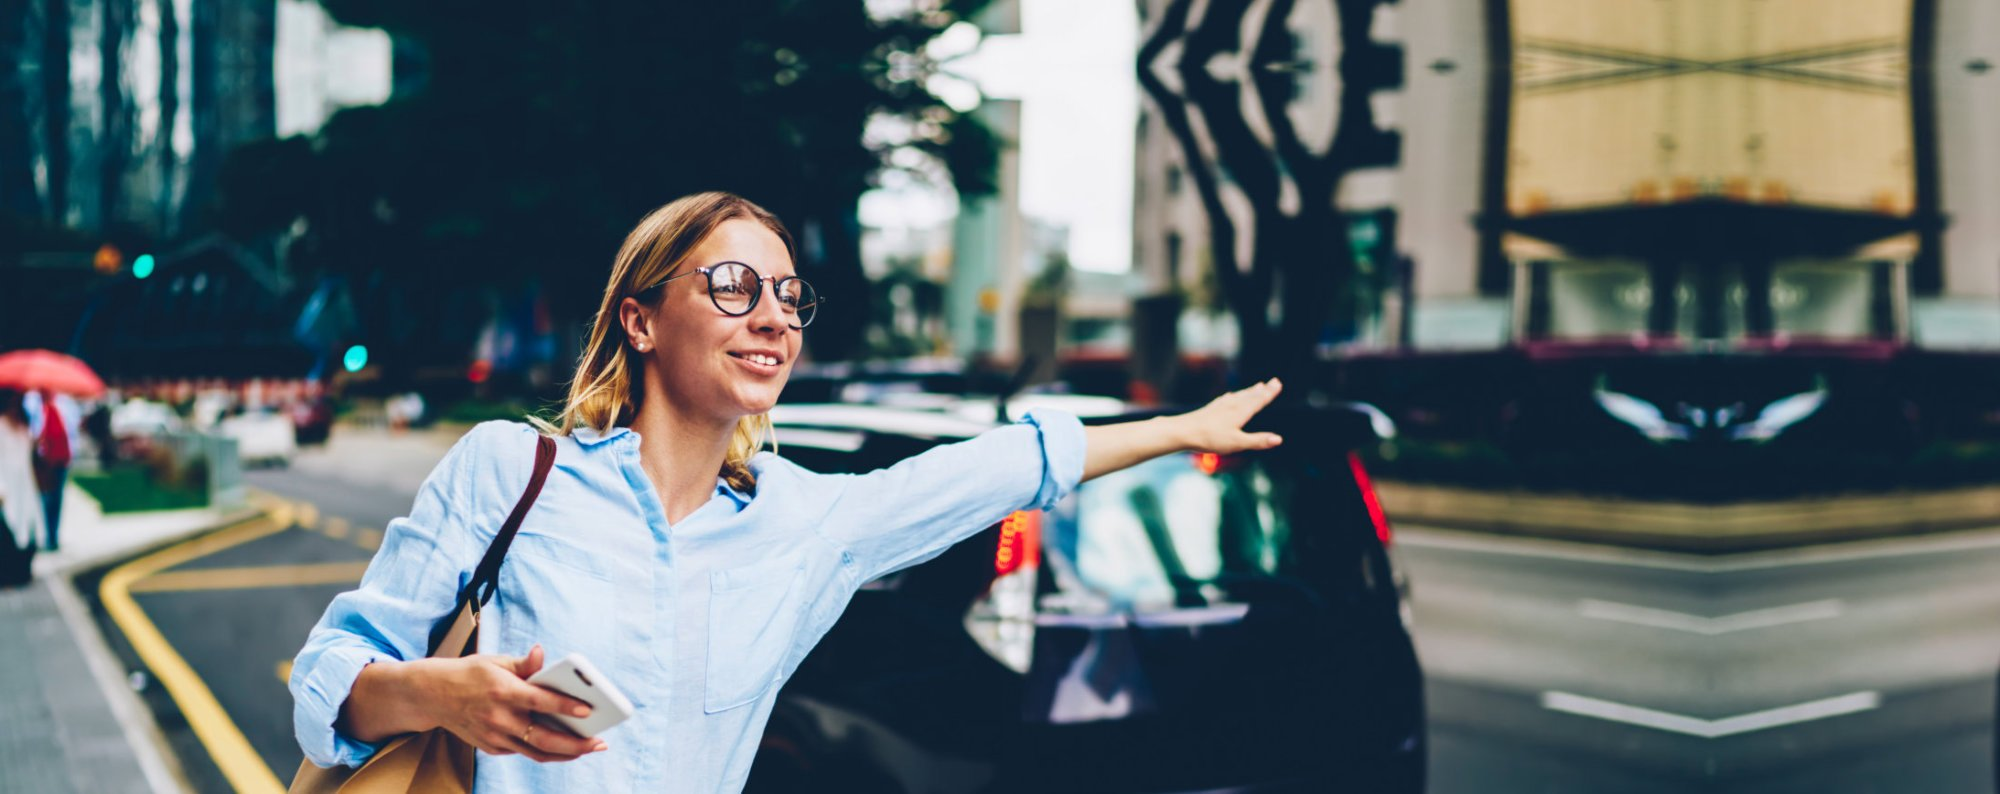 woman waving for taking a car in downtown area